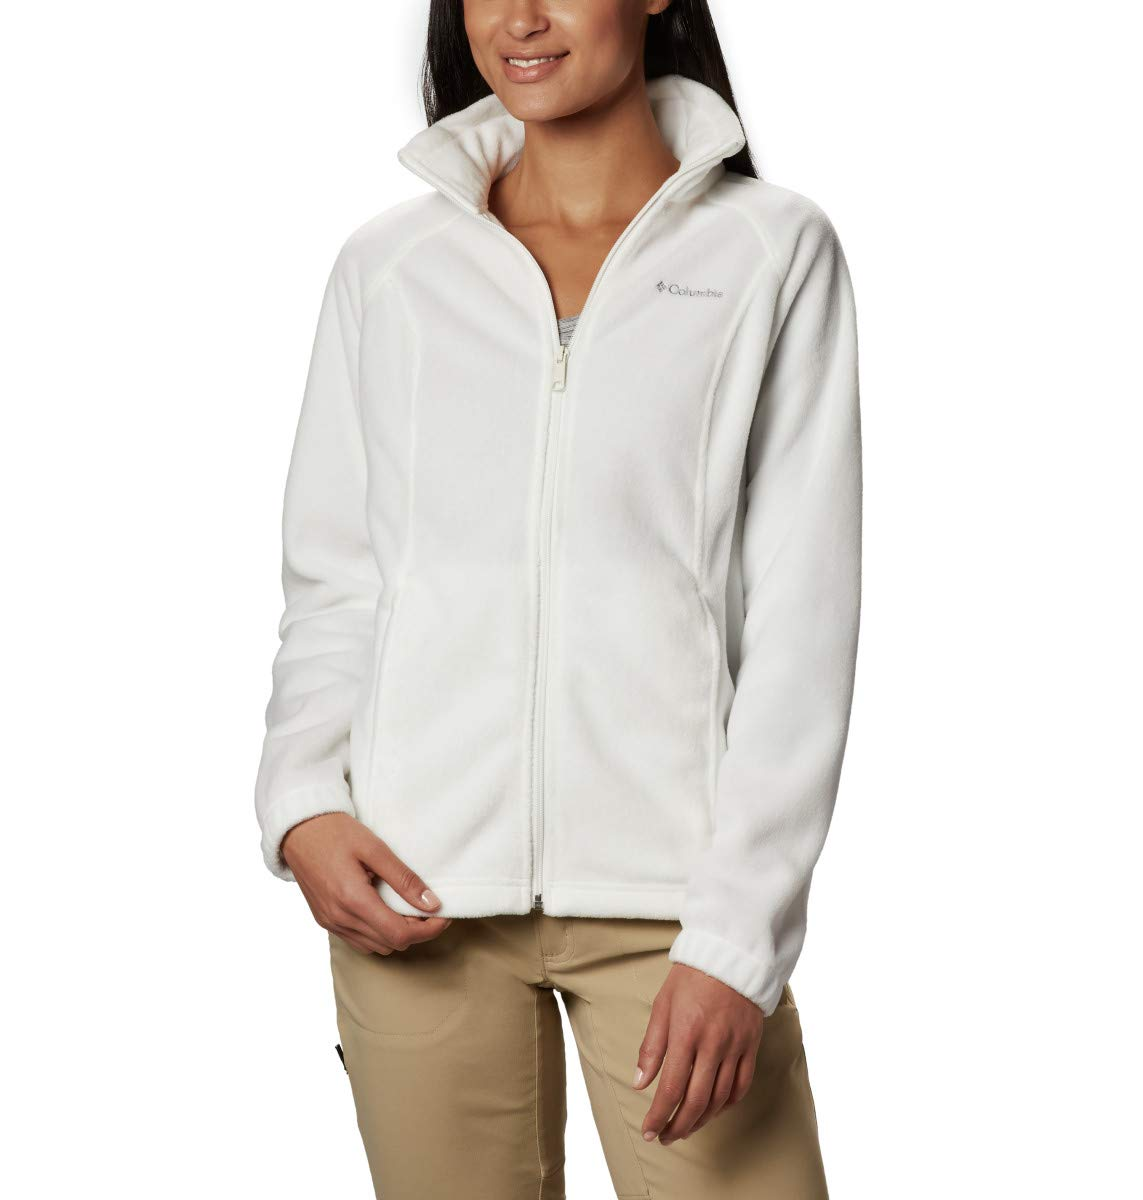 Columbia Women's Benton Springs Full Zip Jacket, Soft Fleece with Classic Fit, Sea Salt, SM by Columbia